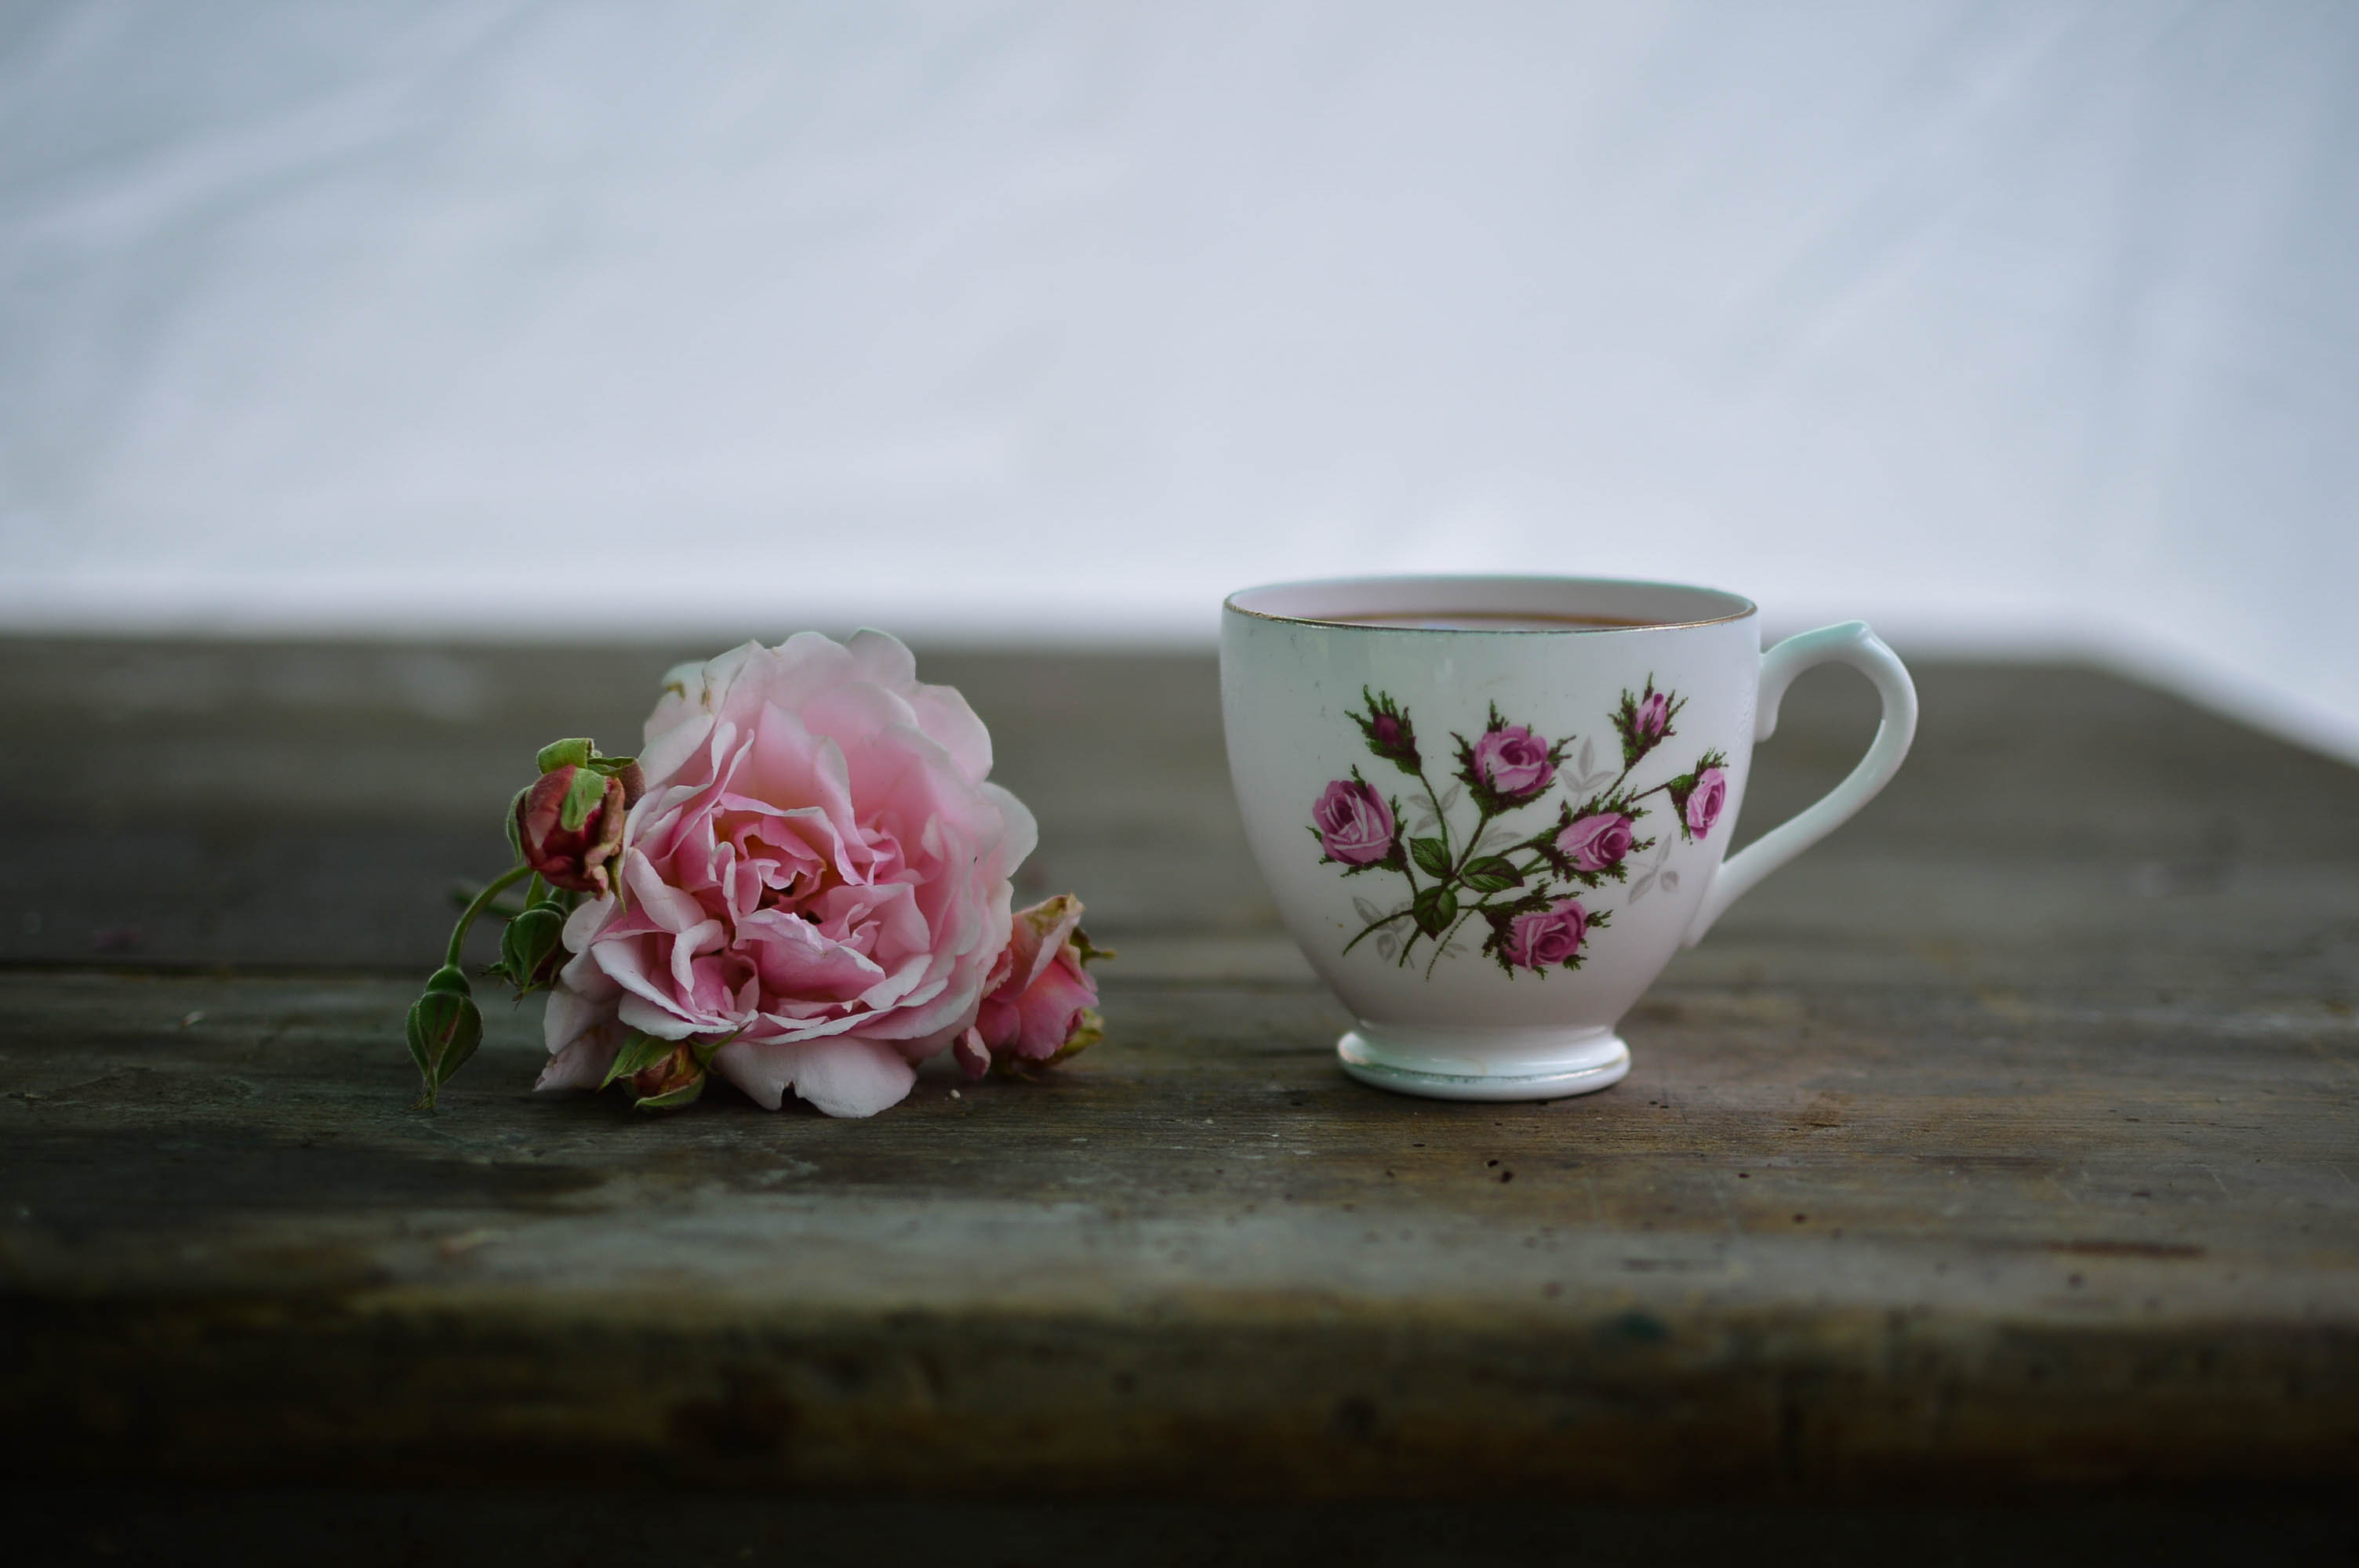 Rose and china teacup on wooden table